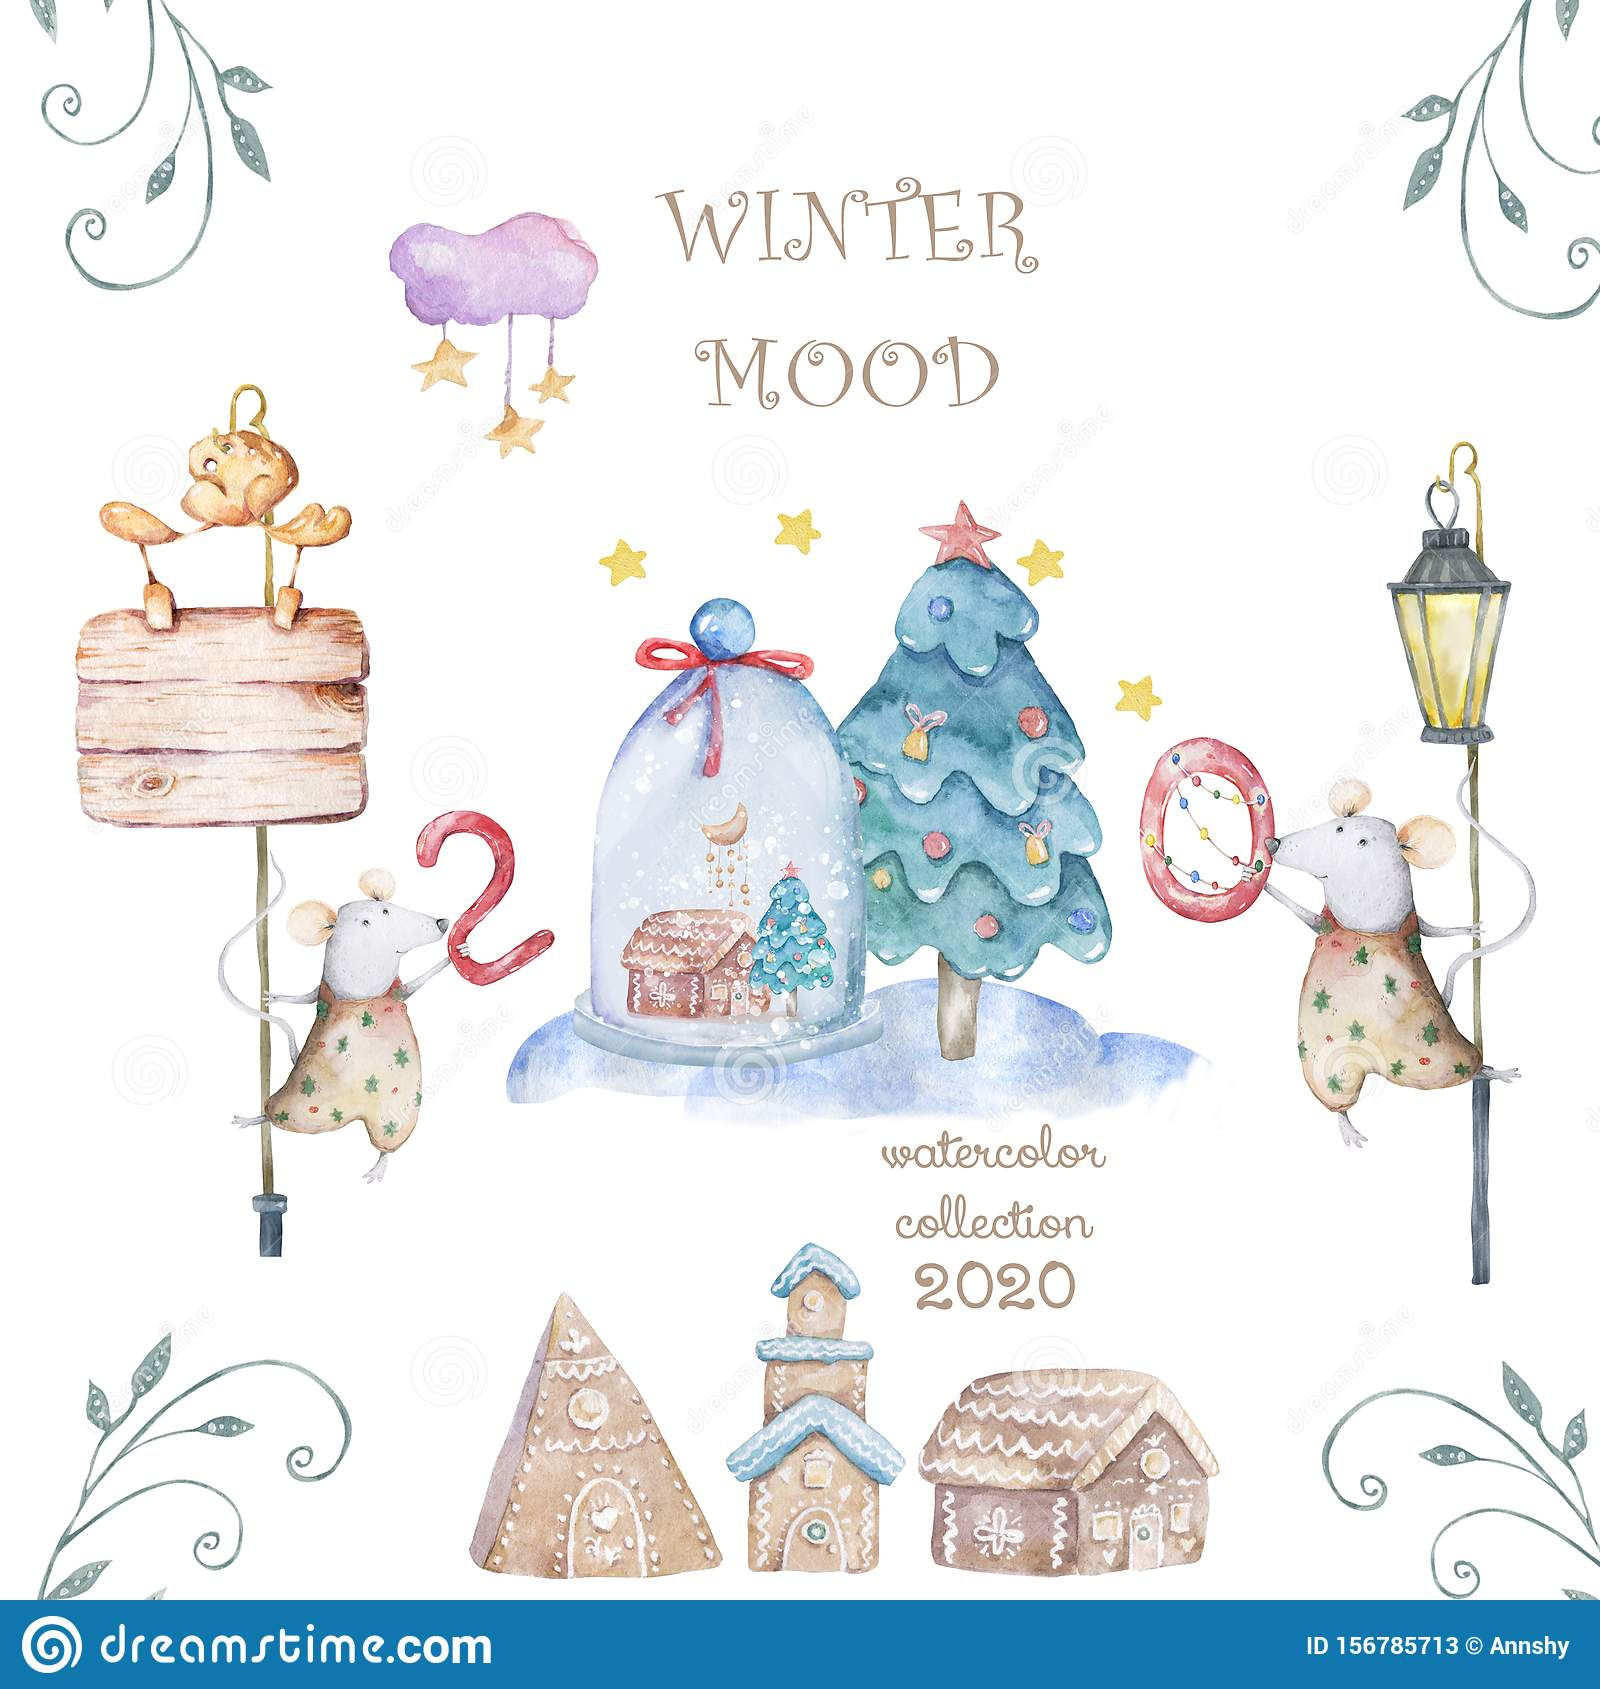 Cute watercolor cartoon rats and spruce tree. Watercolor hand drawn animals illustration. New Year 2020 holiday drawing